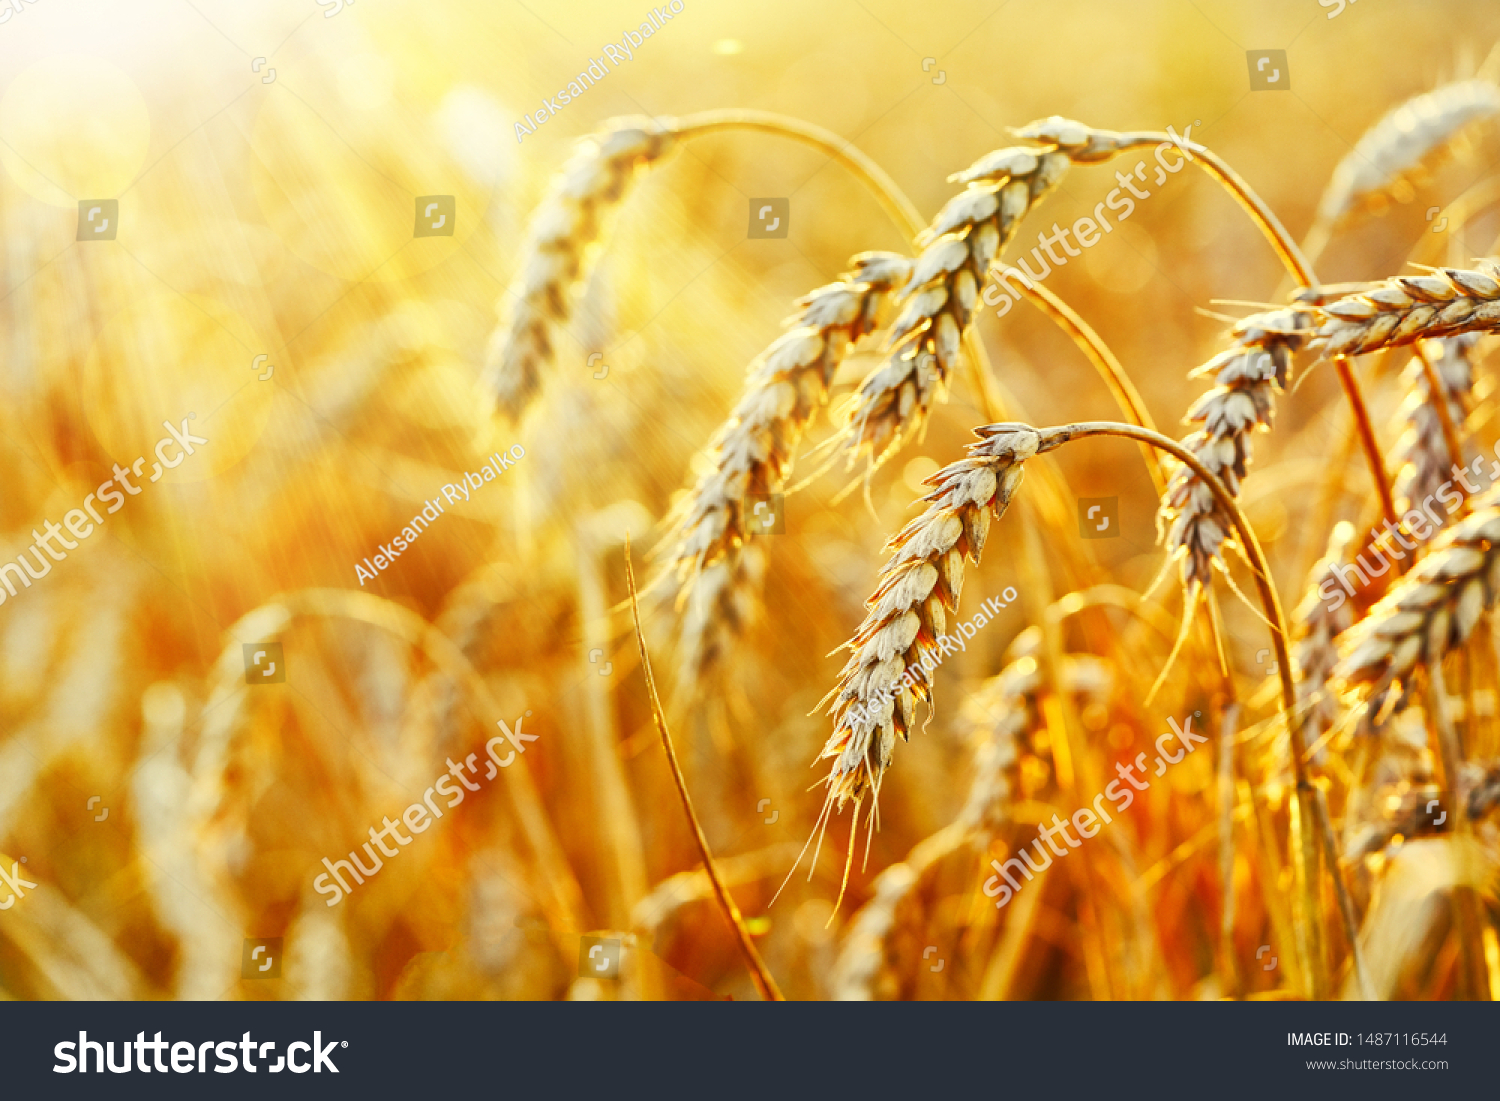 Wheat field. Ears of golden wheat. Beautiful Sunset Landscape. Background of ripening ears. Ripe cereal crop. close up #1487116544